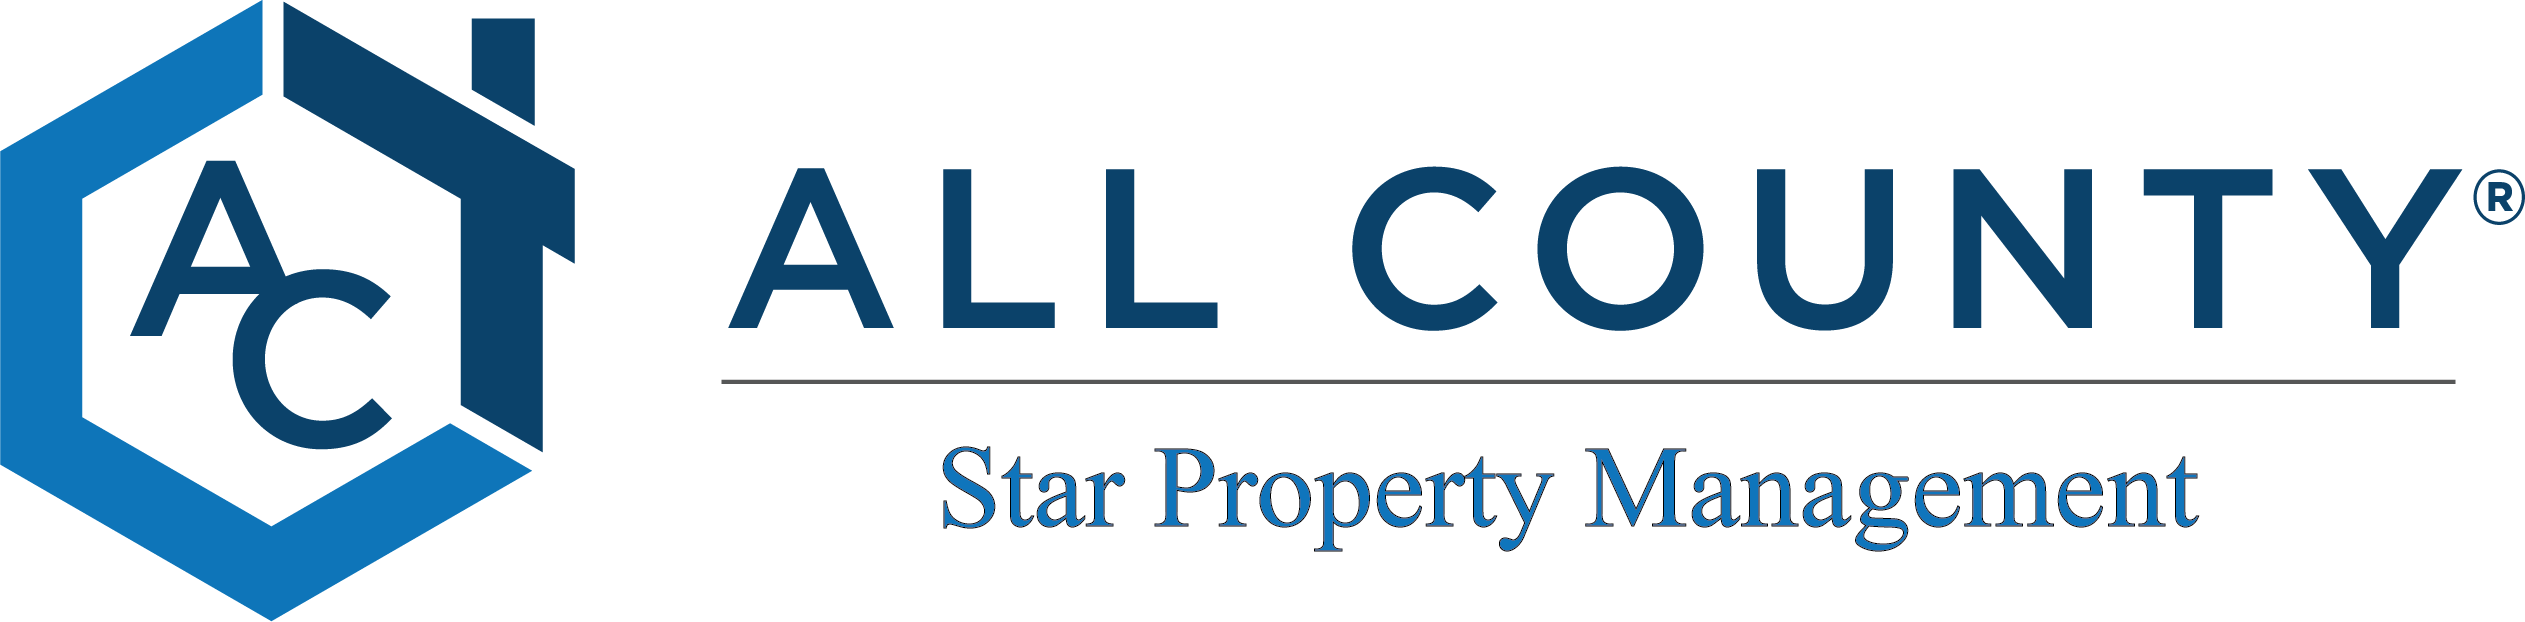 All County Star Property Management